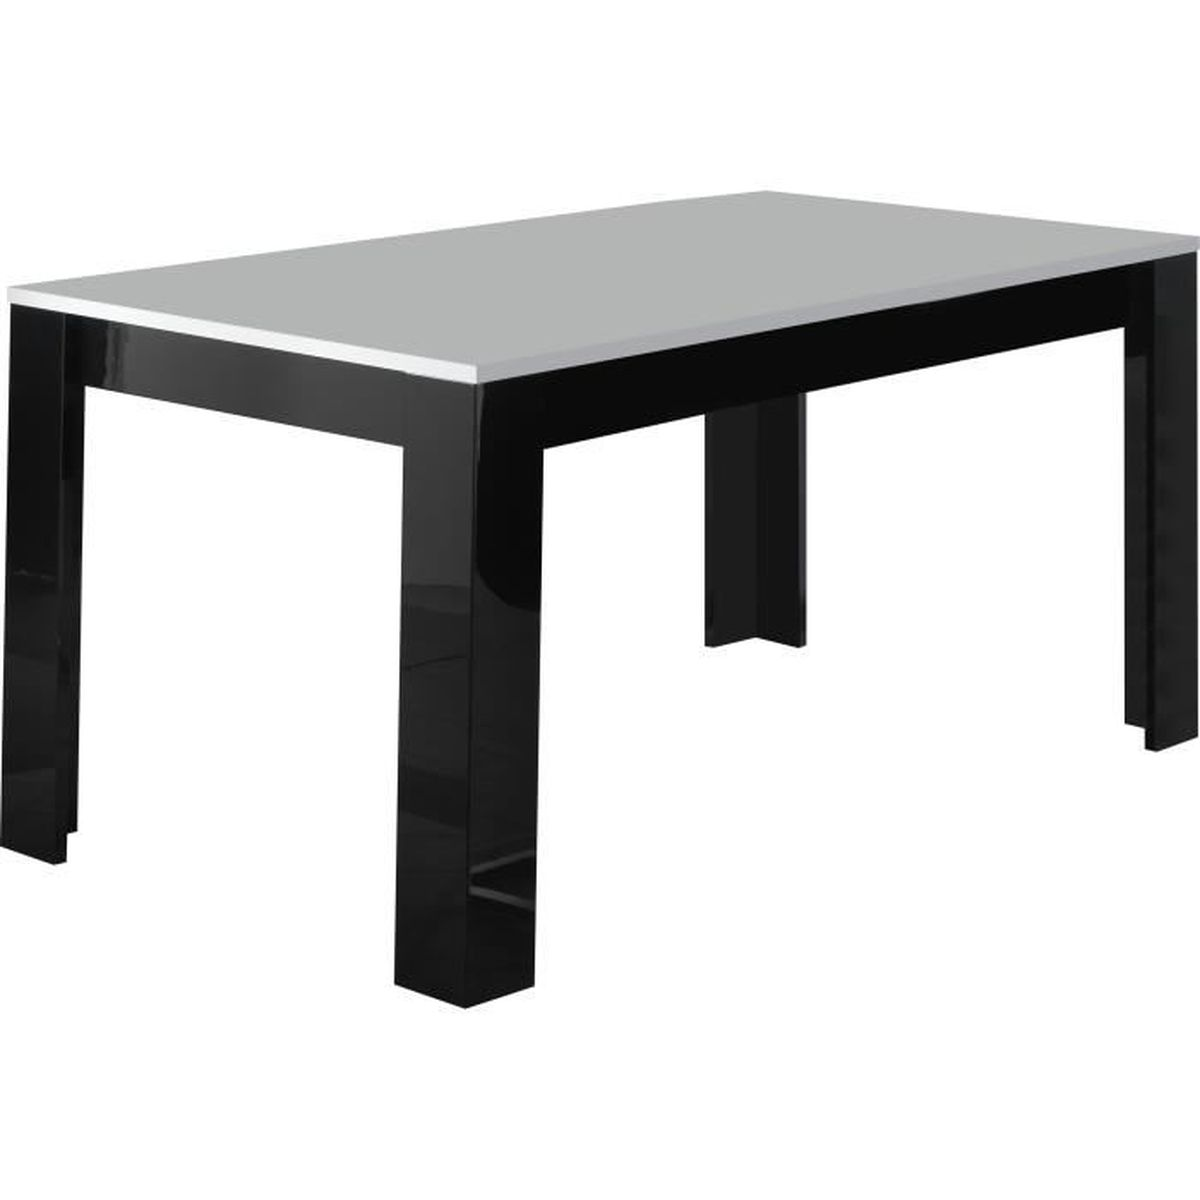 Table manger laqu e brillante de 160cm coloris noir et for Table haute a manger